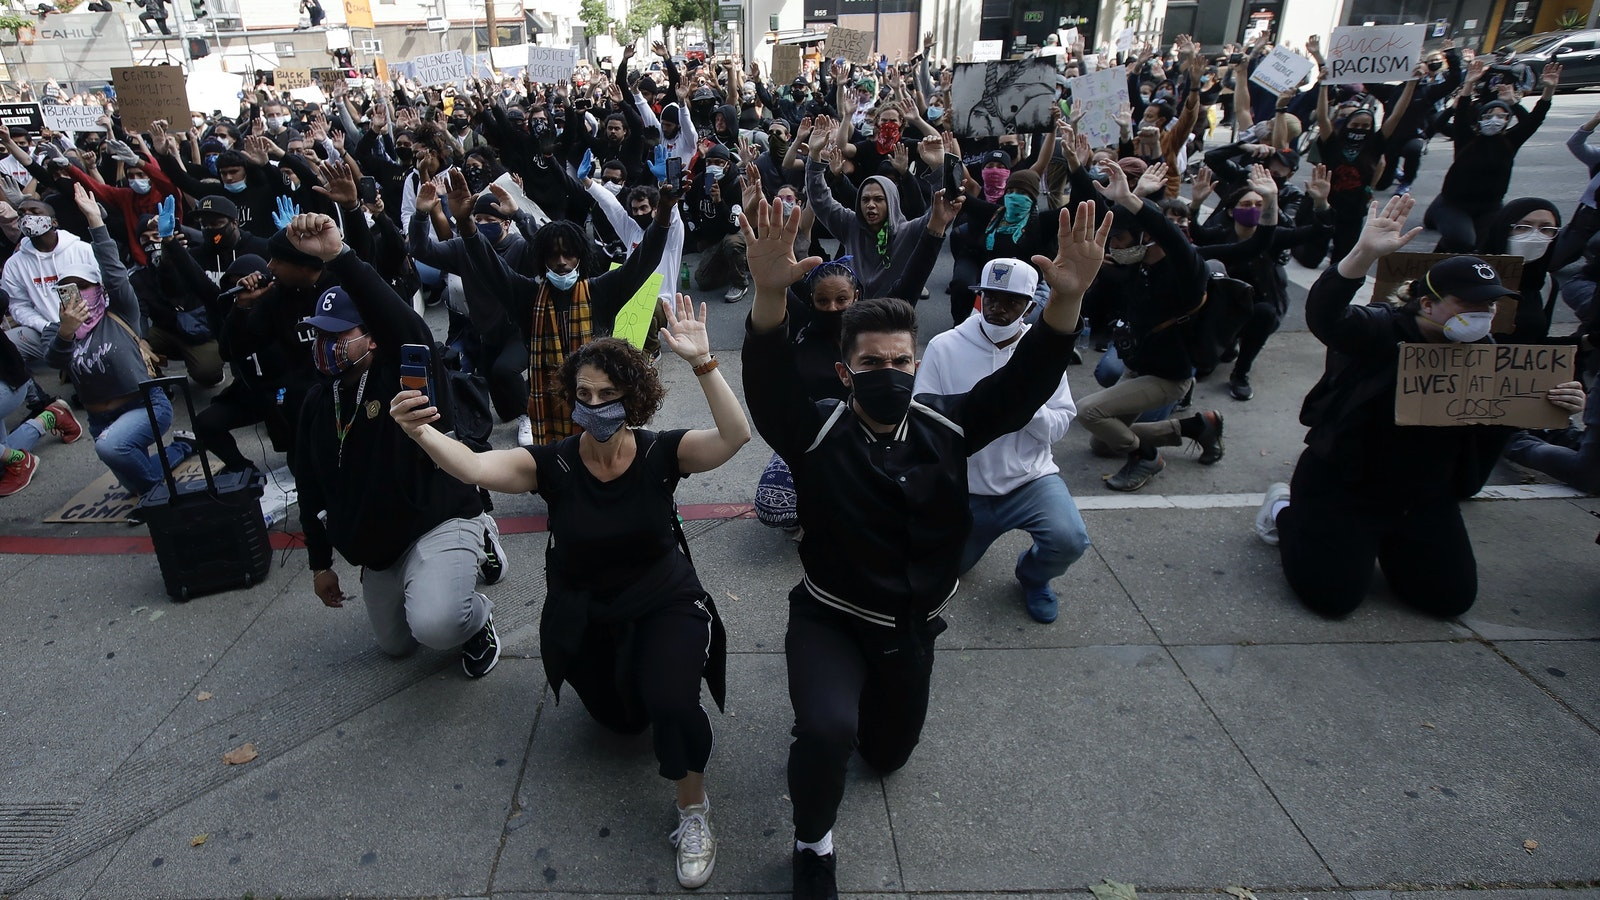 Protesters in San Francisco over the weekend. Photo by AP